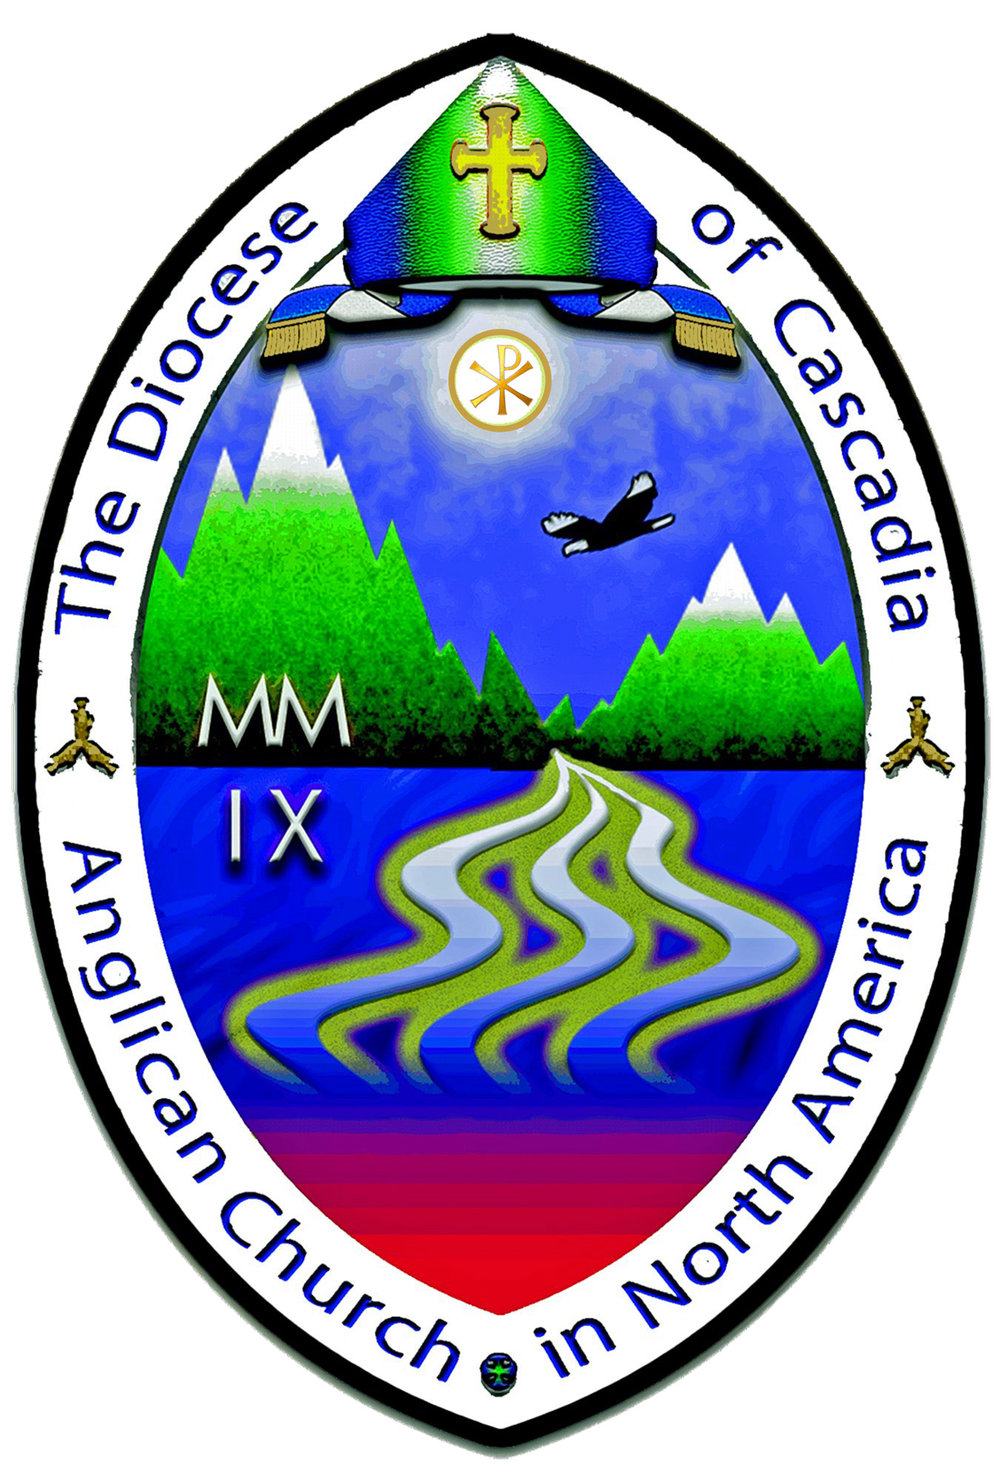 the diocese of cascadia